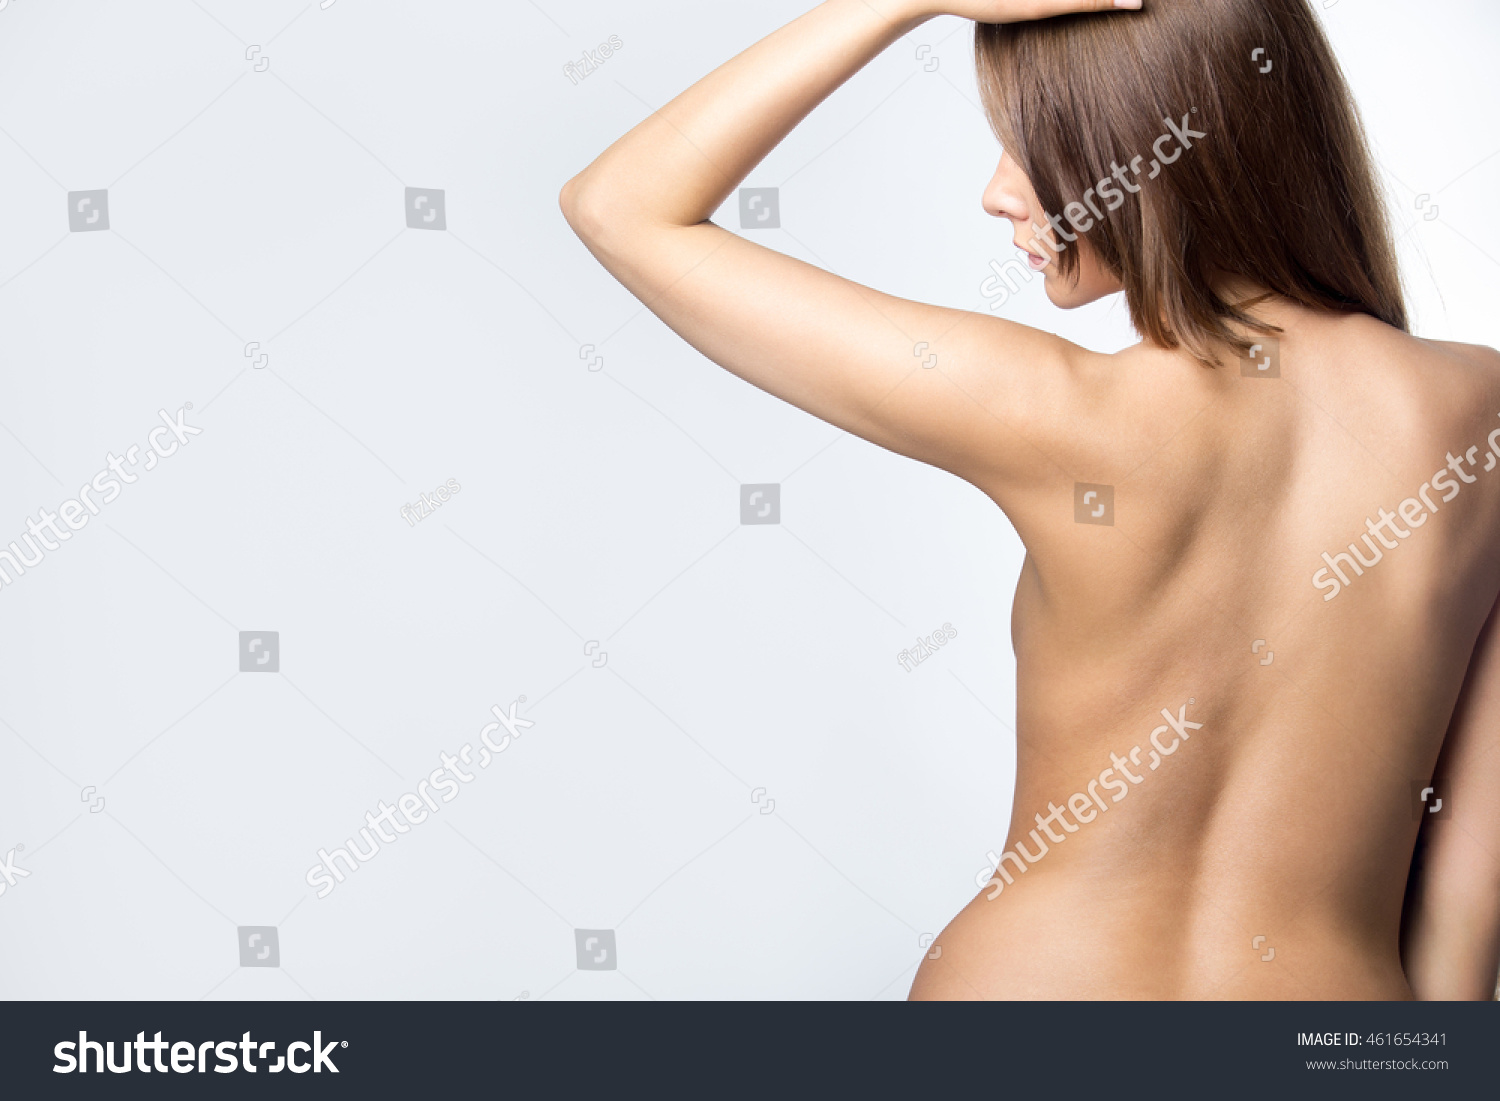 back profile view sexy fit nude stock photo (download now) 461654341